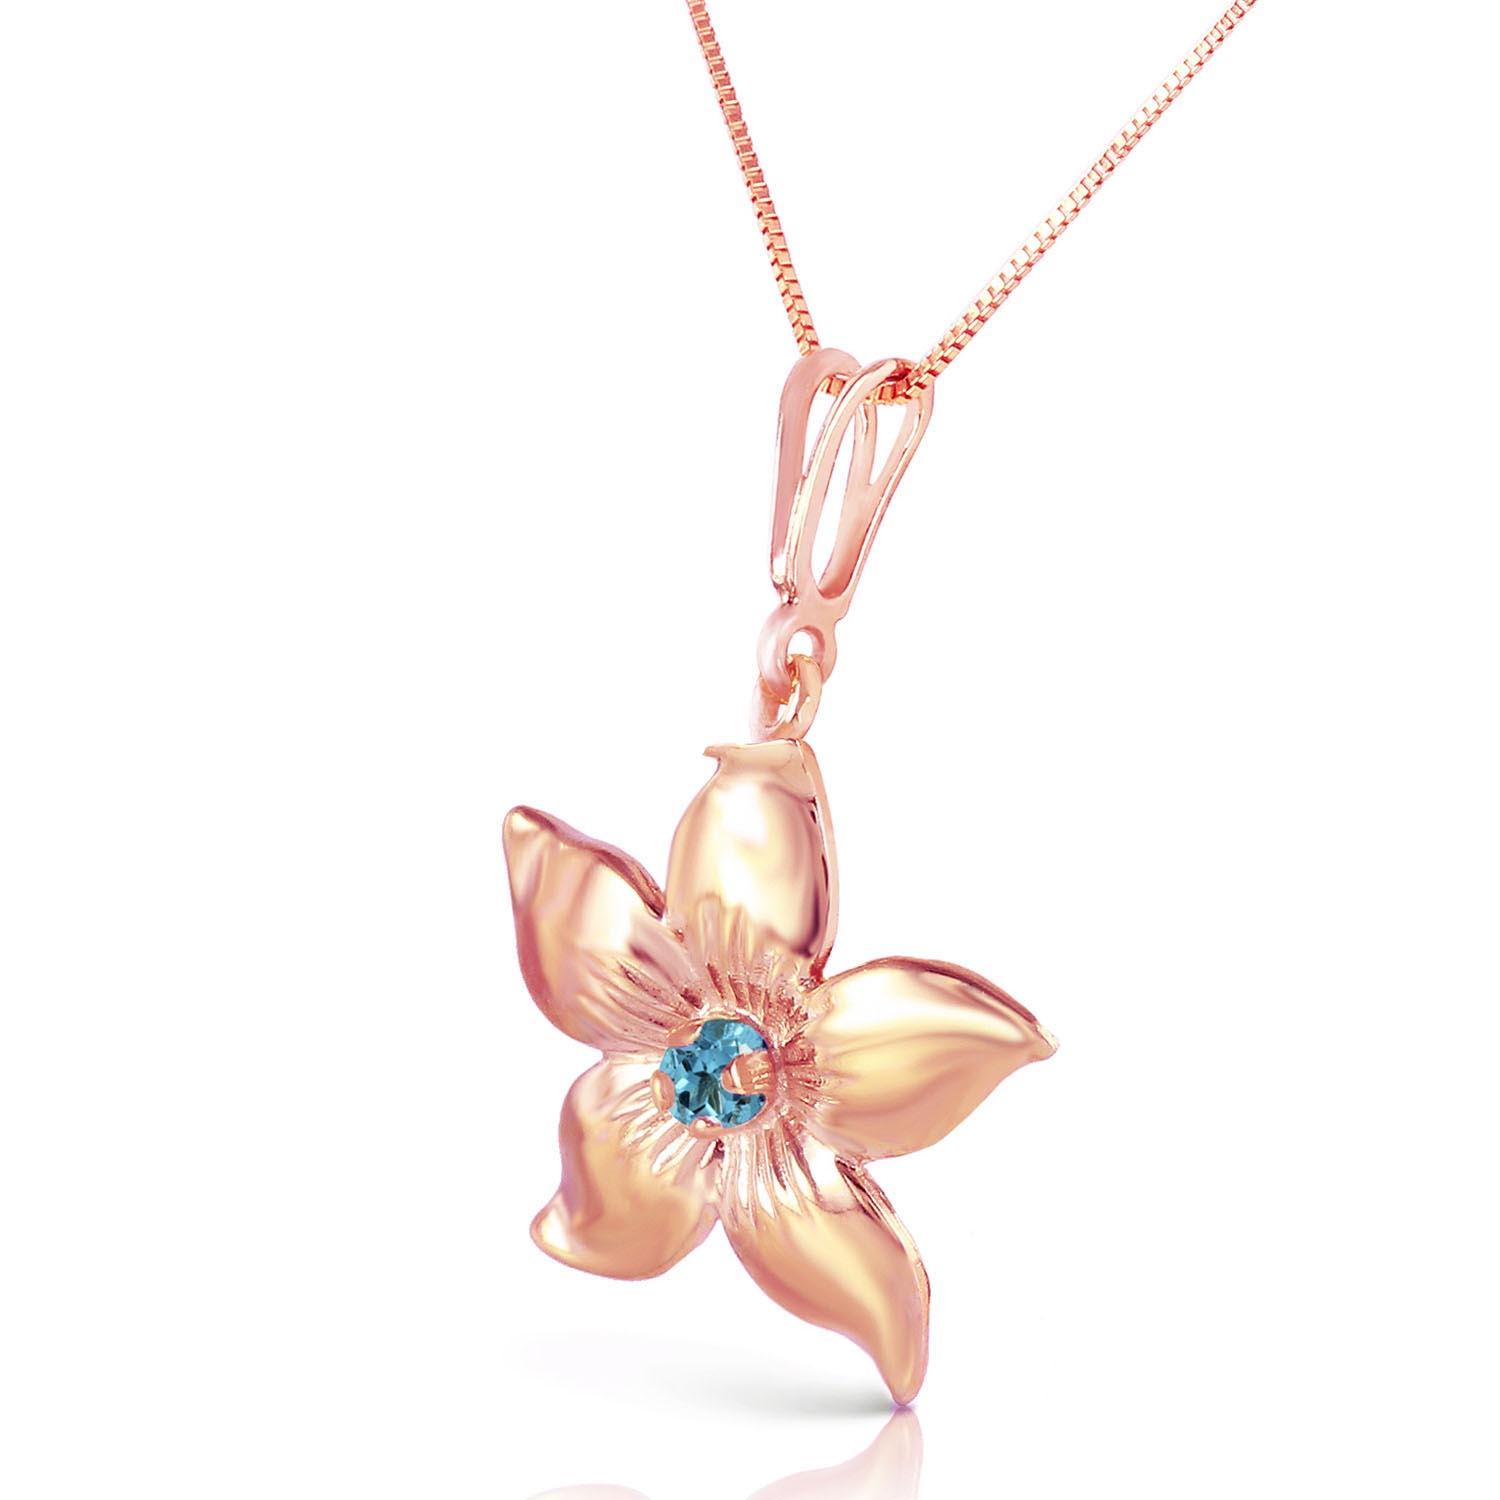 Blue Topaz Flower Star Pendant Necklace 0.1 ct in 9ct Rose Gold